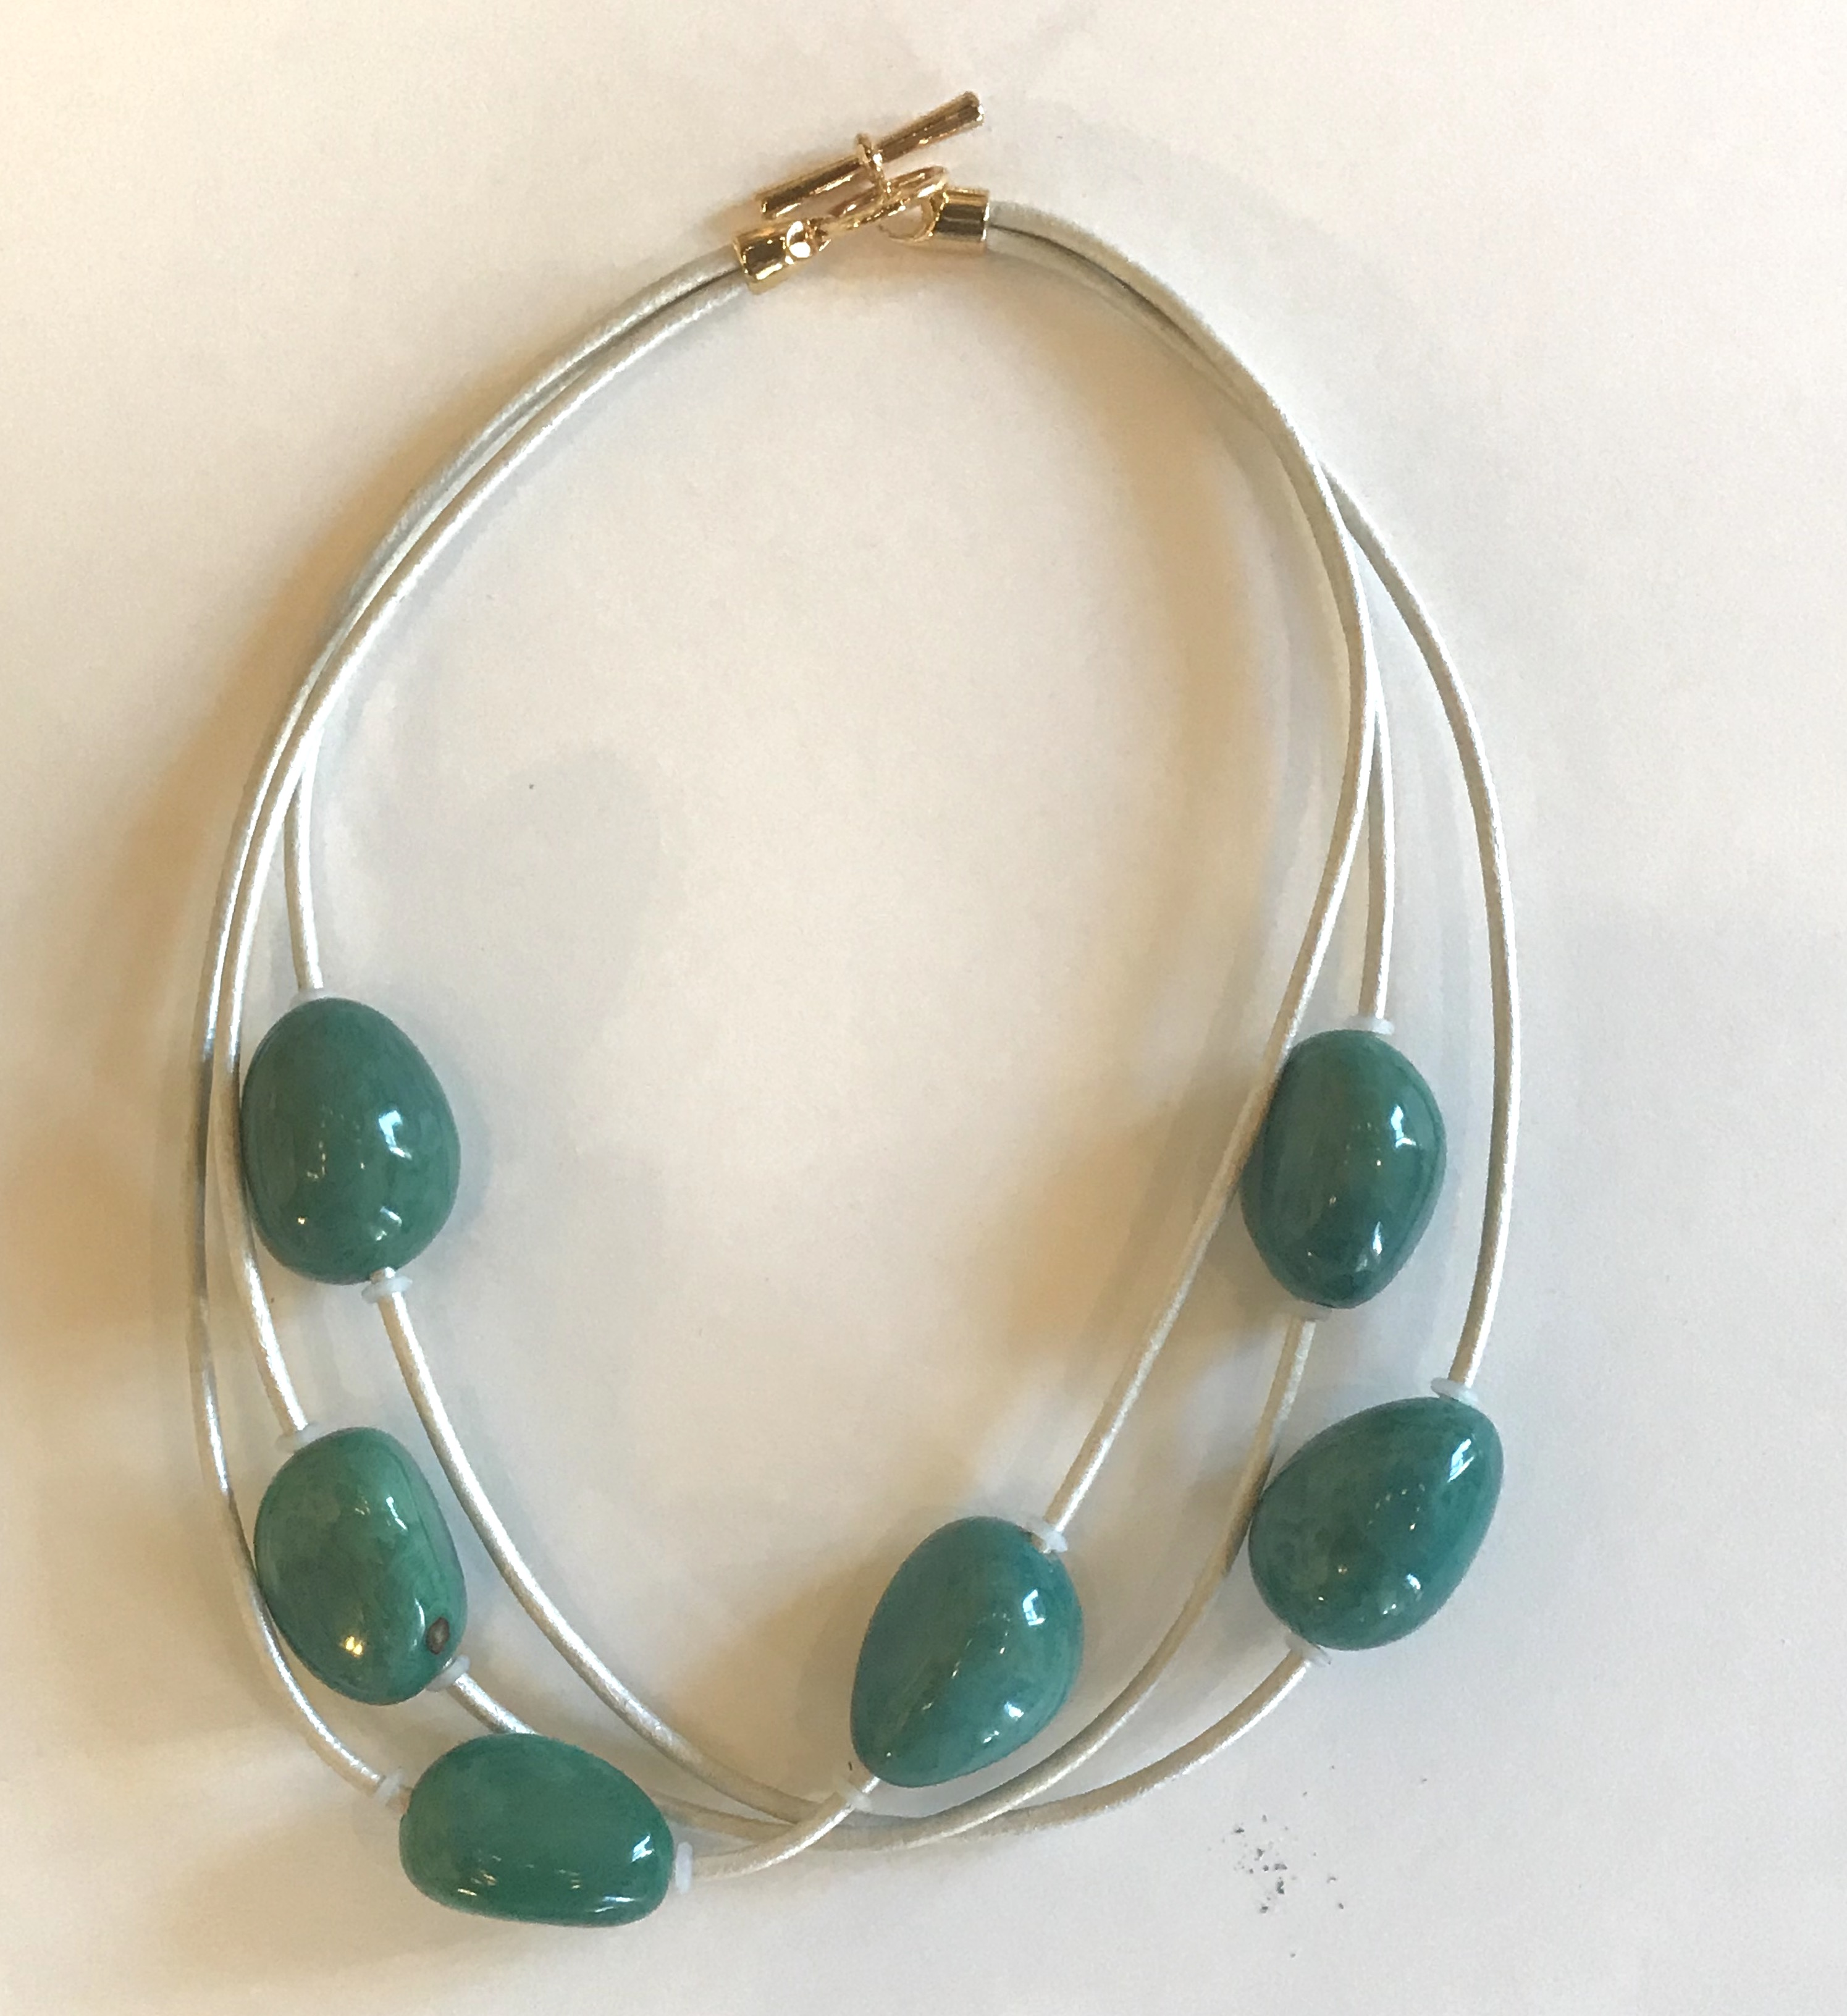 Sugarfoot Jewels - Leather & Tagua Nut Necklace border=